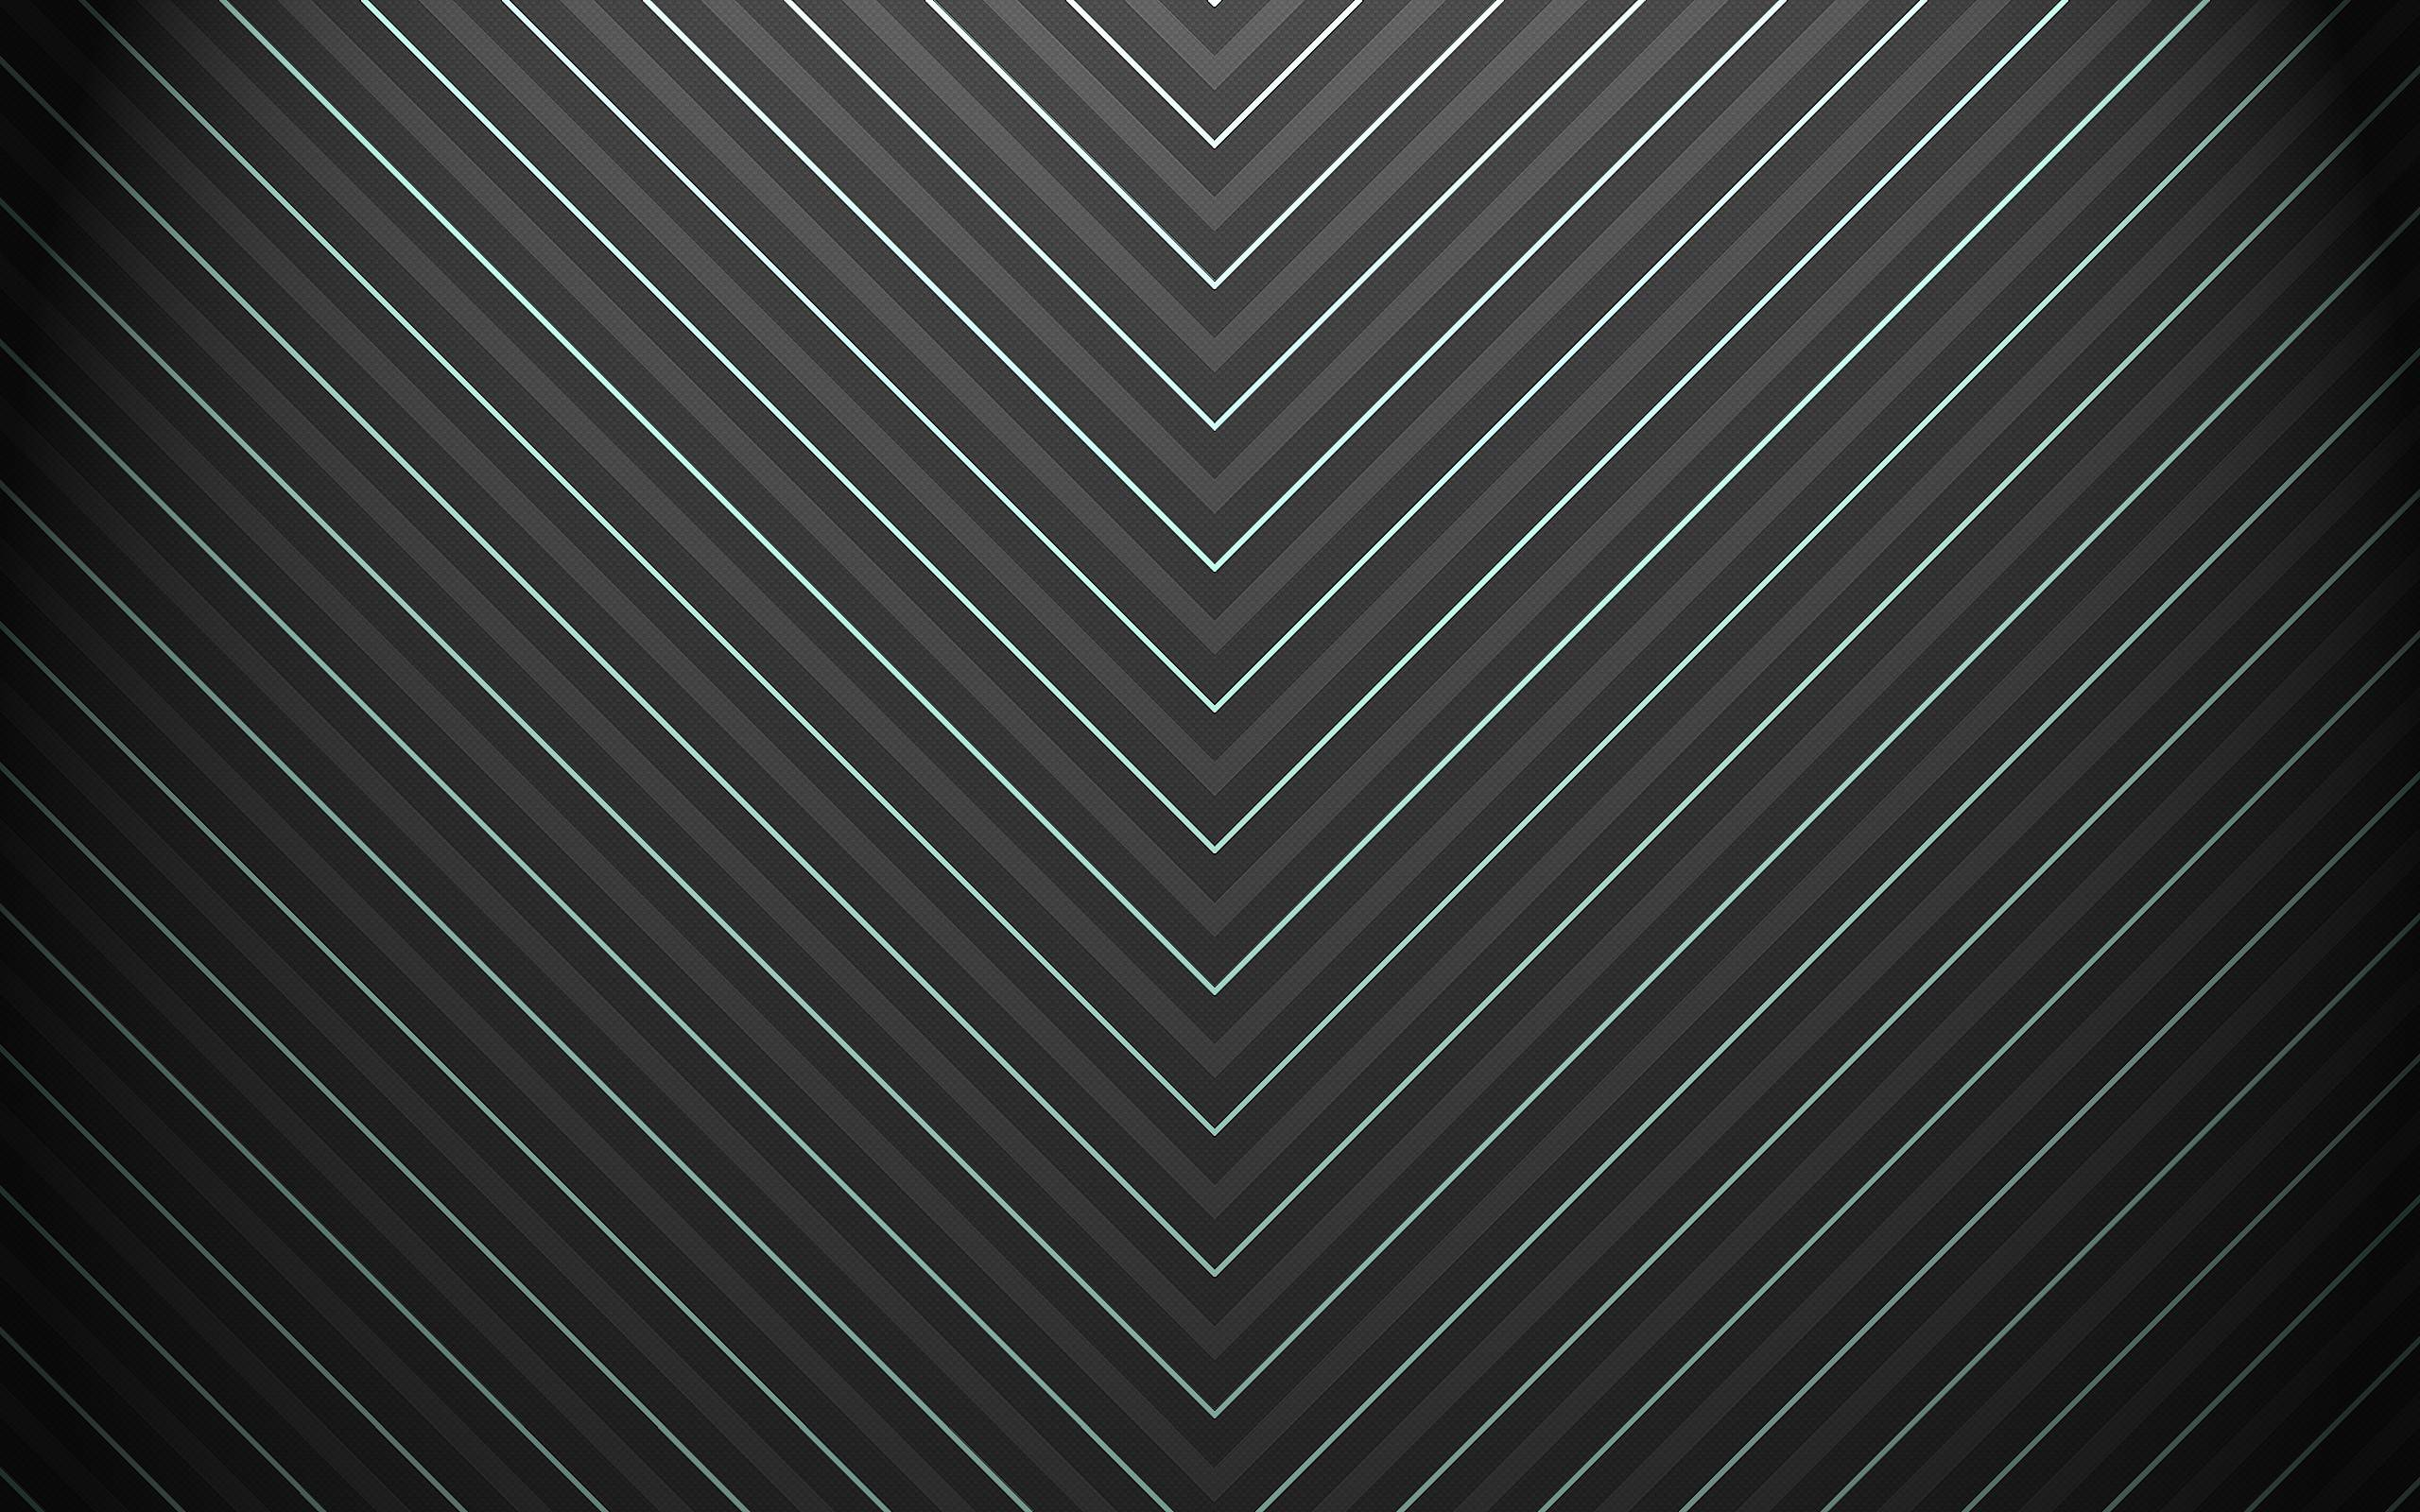 Plain backgrounds Arrow Line in black and gray backgrounds